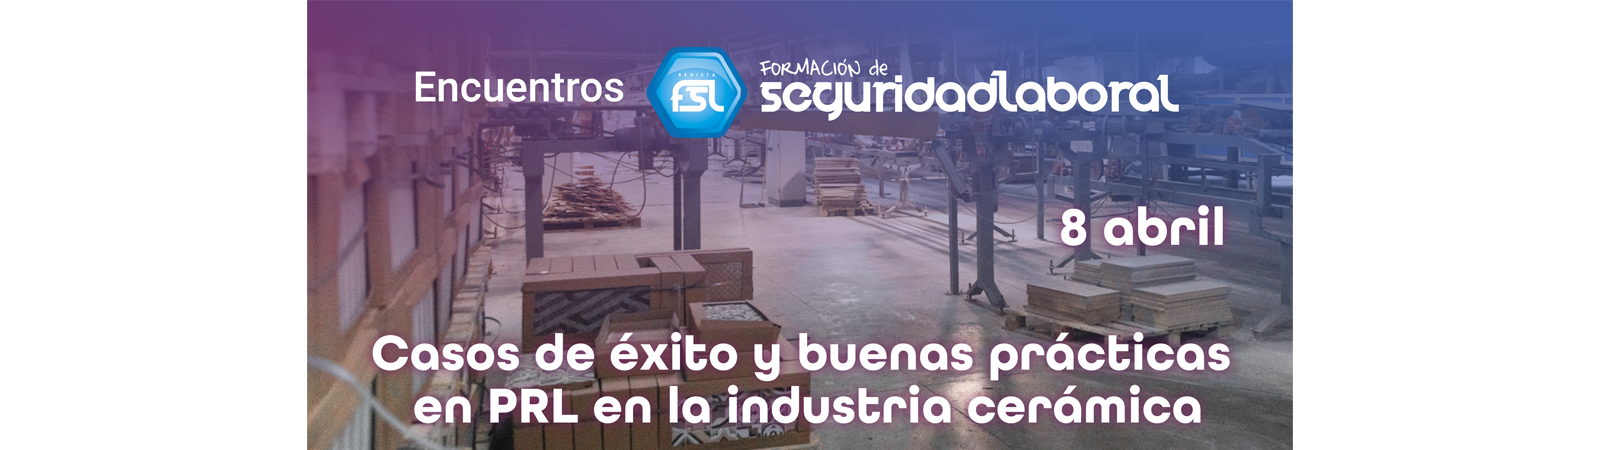 SACMI IBÉRICA will participate in the online conference on health and safety at work in the ceramics industry.